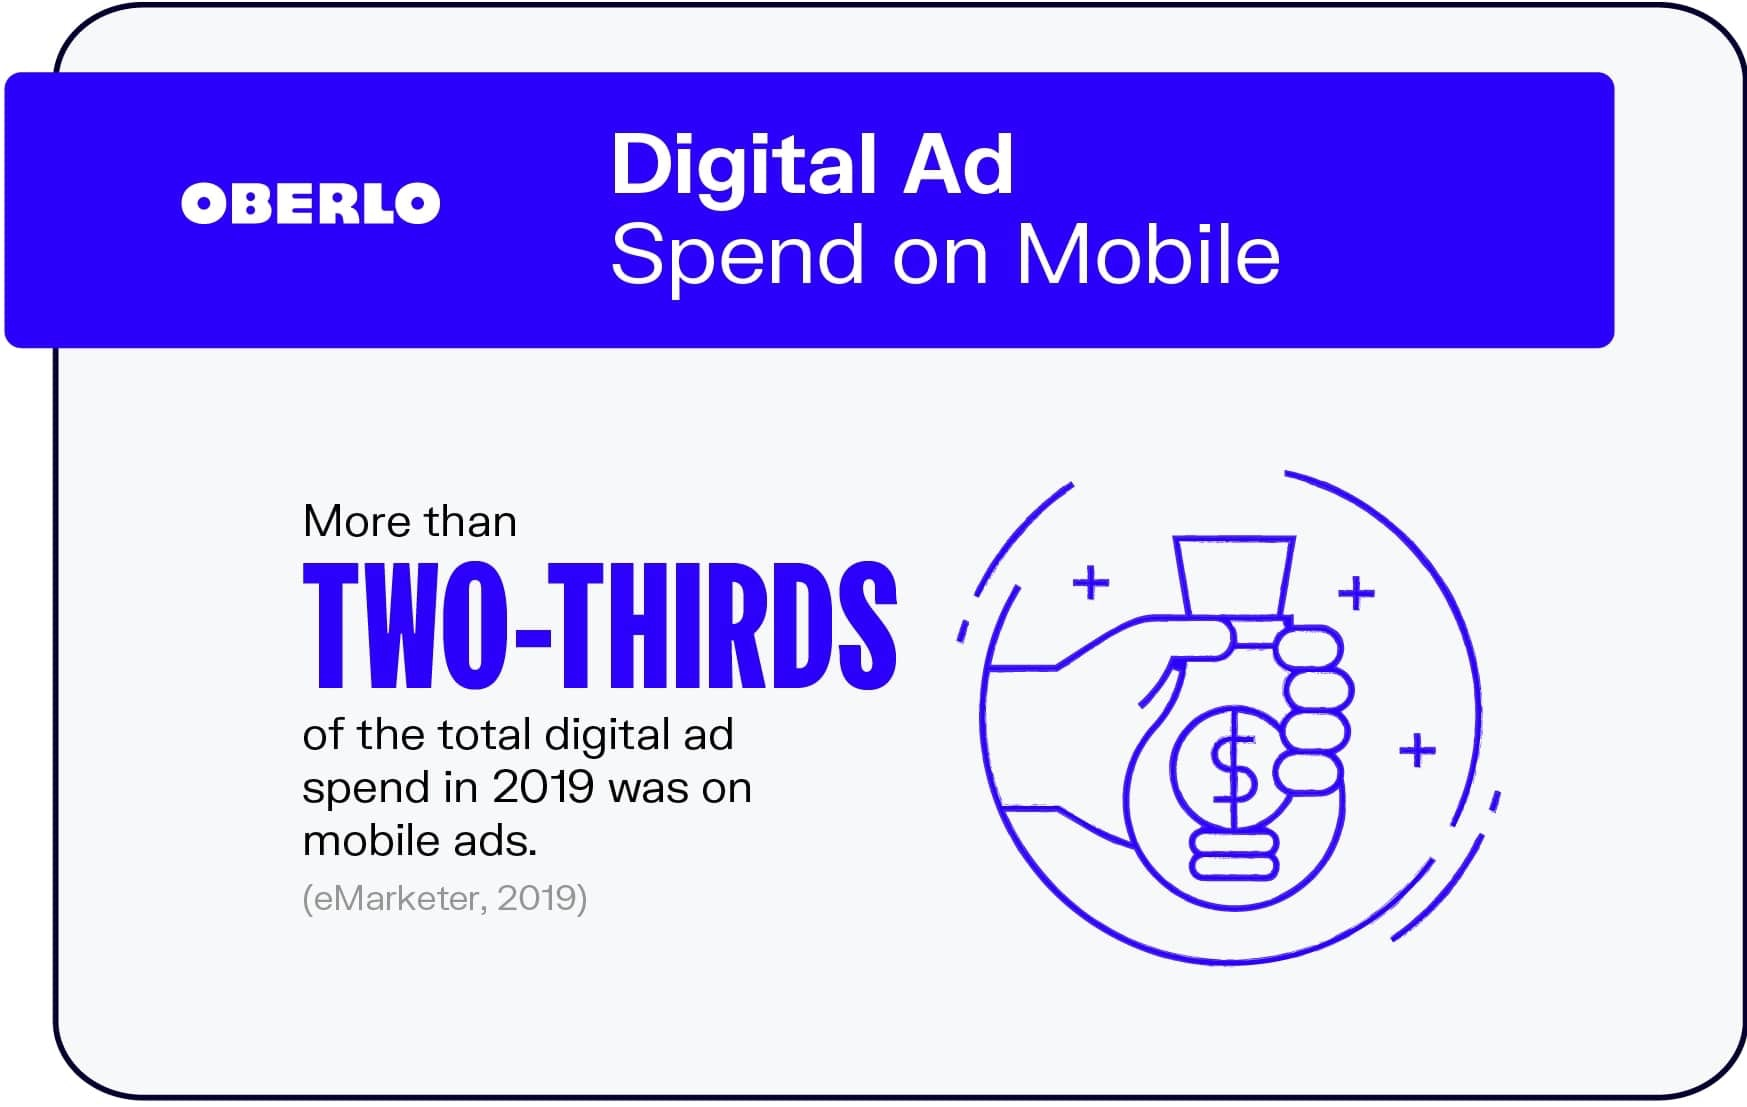 Digital Ad Spend on Mobile